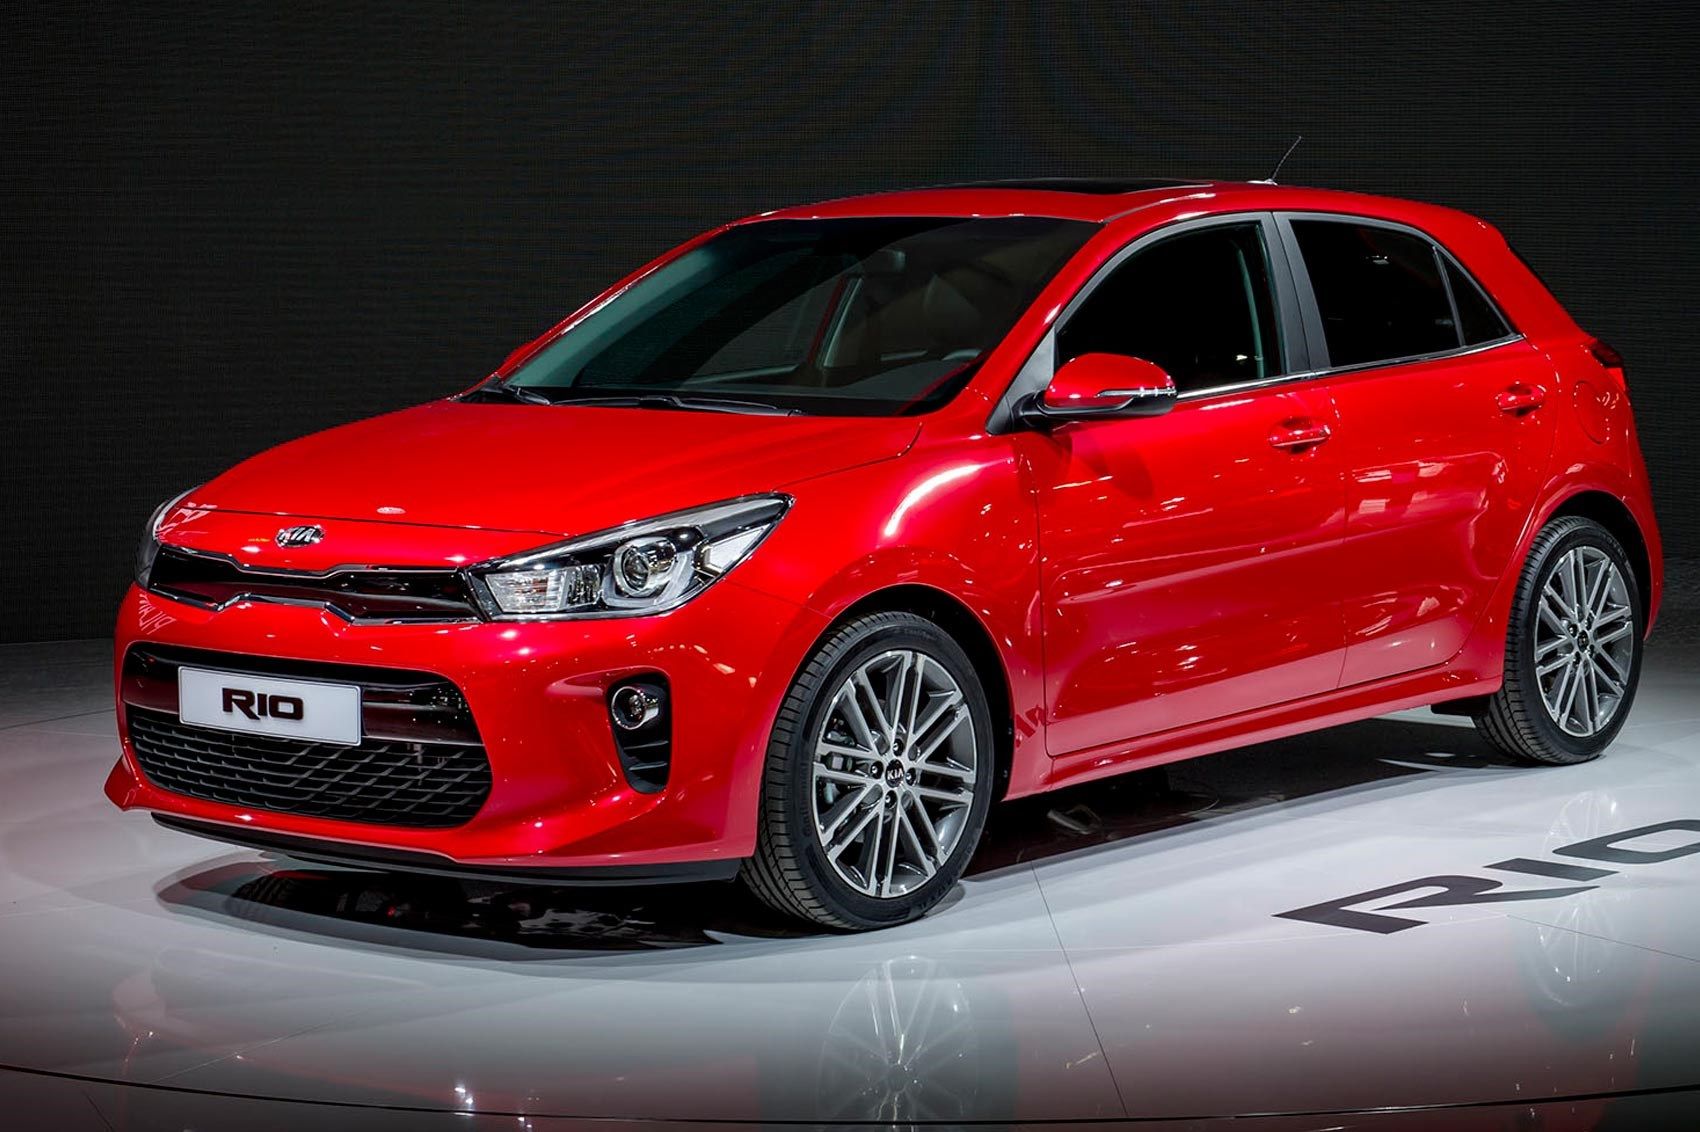 new kia rio revealed latest on kia s upcoming fiesta rival car magazine. Black Bedroom Furniture Sets. Home Design Ideas